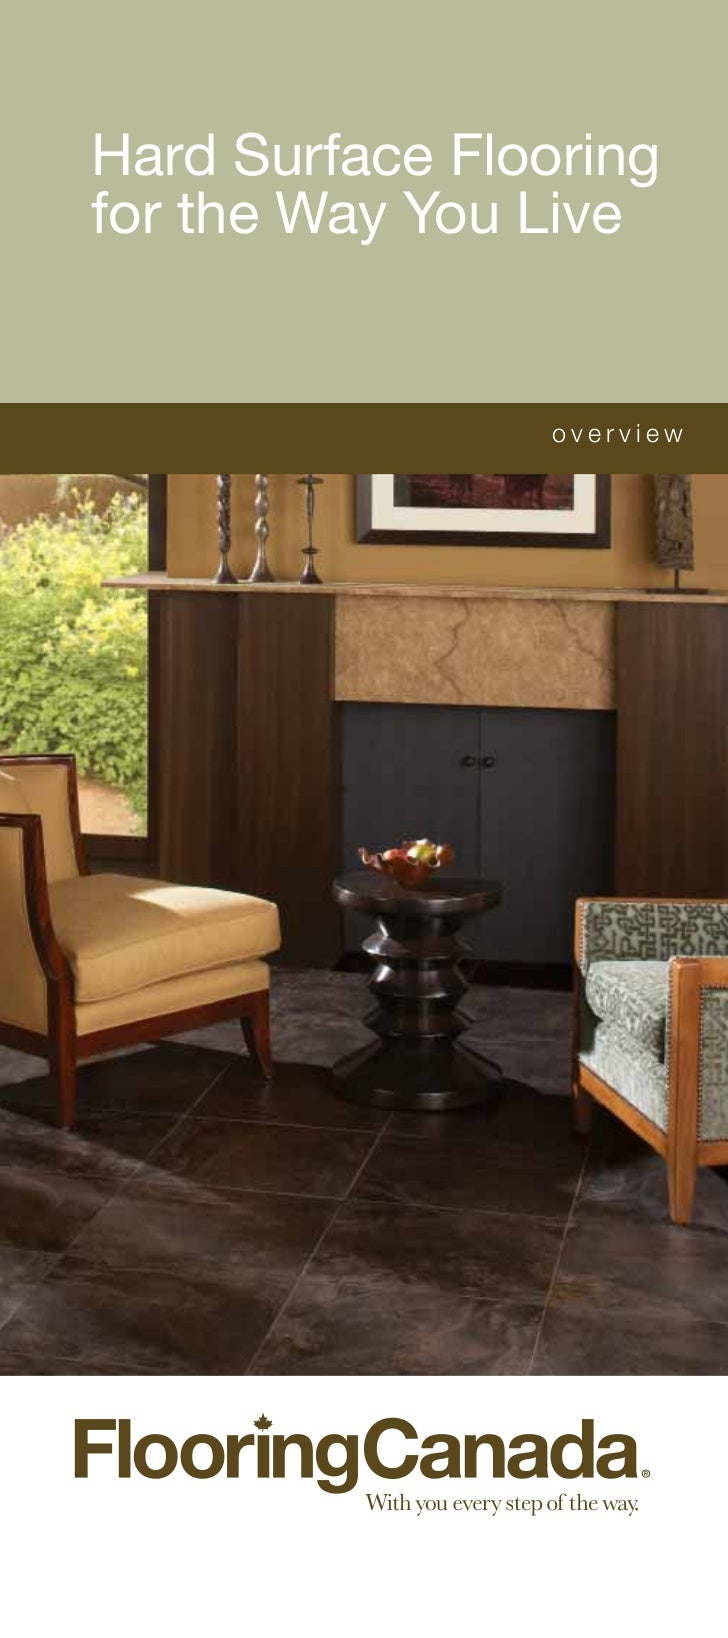 Flooring Canada Hard Surfaces for the Way you Live Brochure